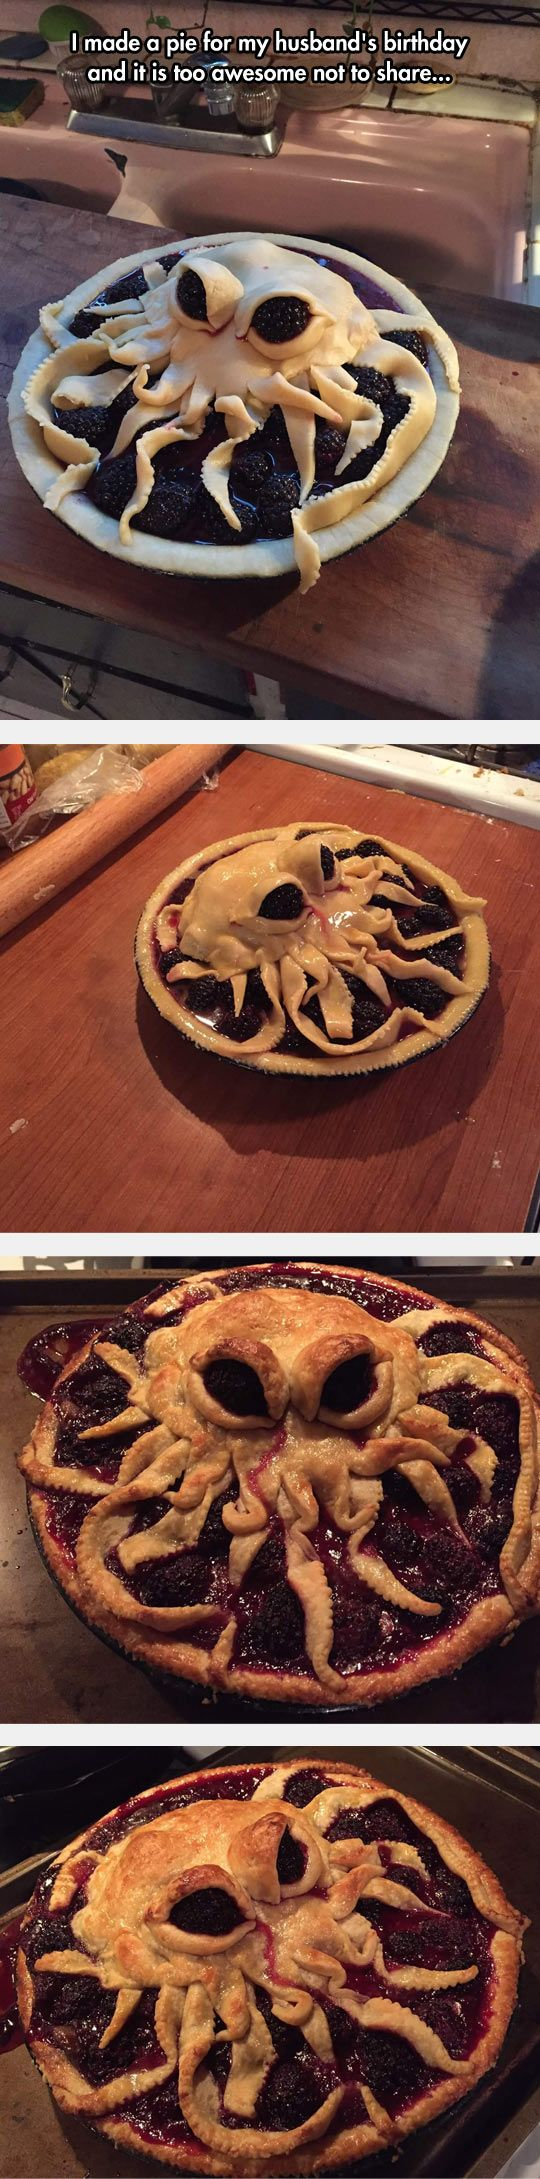 Cthulhu Pie - I need to make this! TF